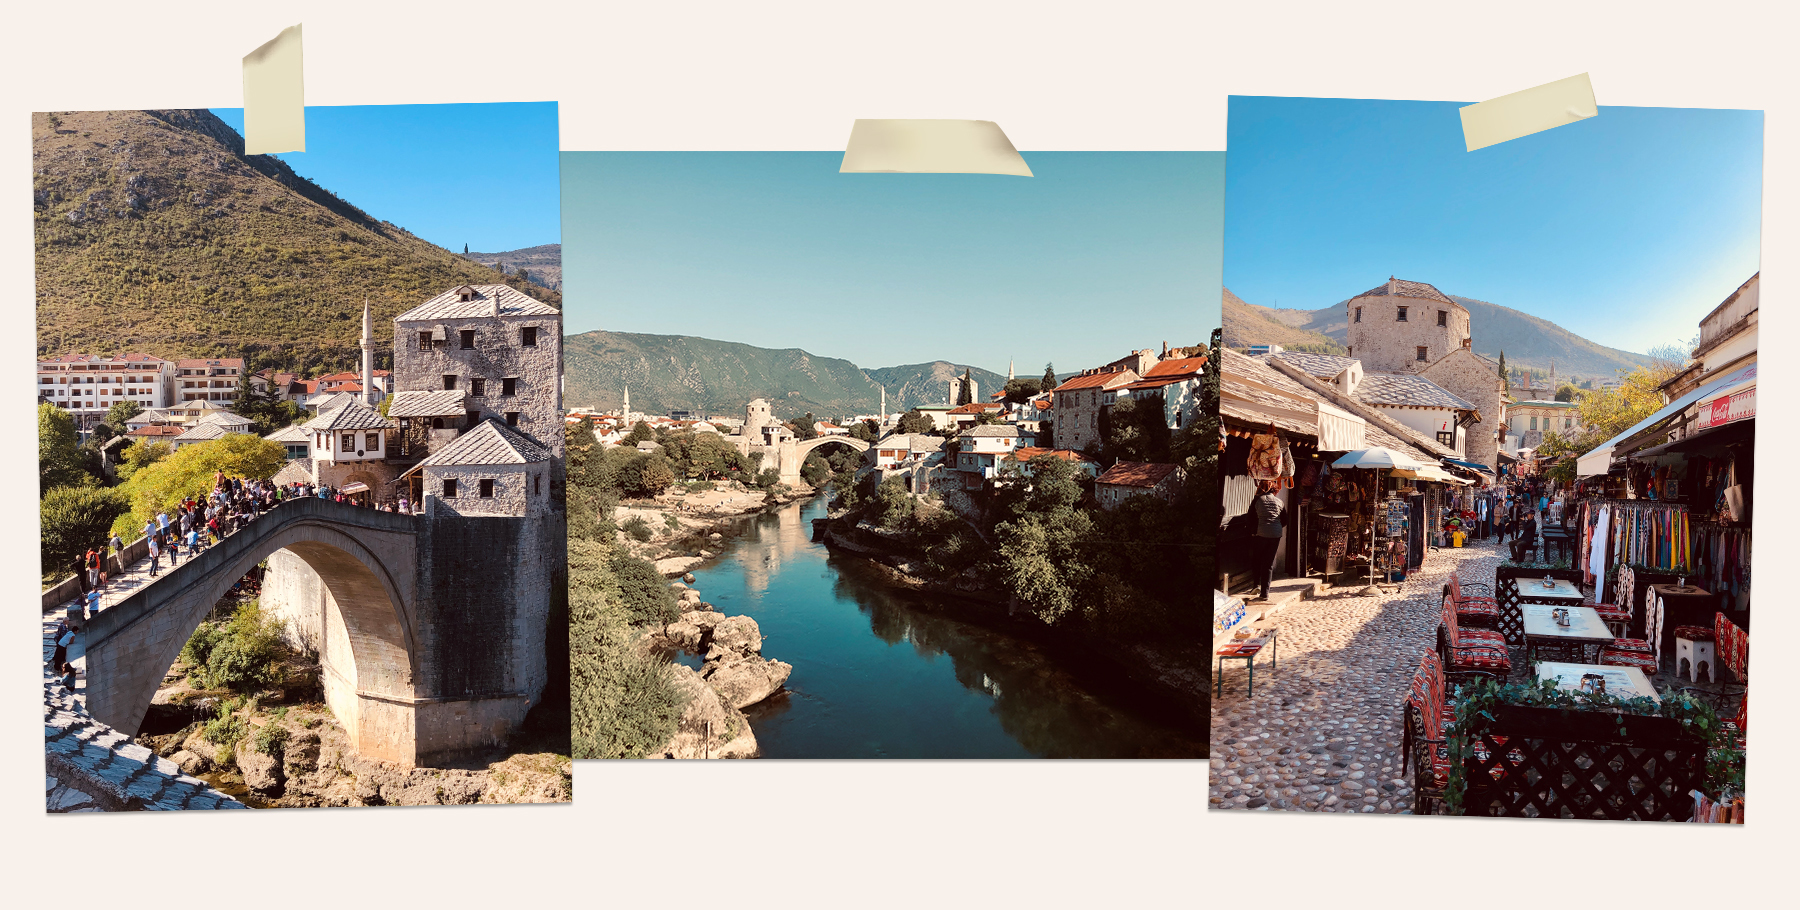 Sanseveria-Kroatië-Bosnië-Stari-Most-Bridge-in-Mostar.jpg#asset:459